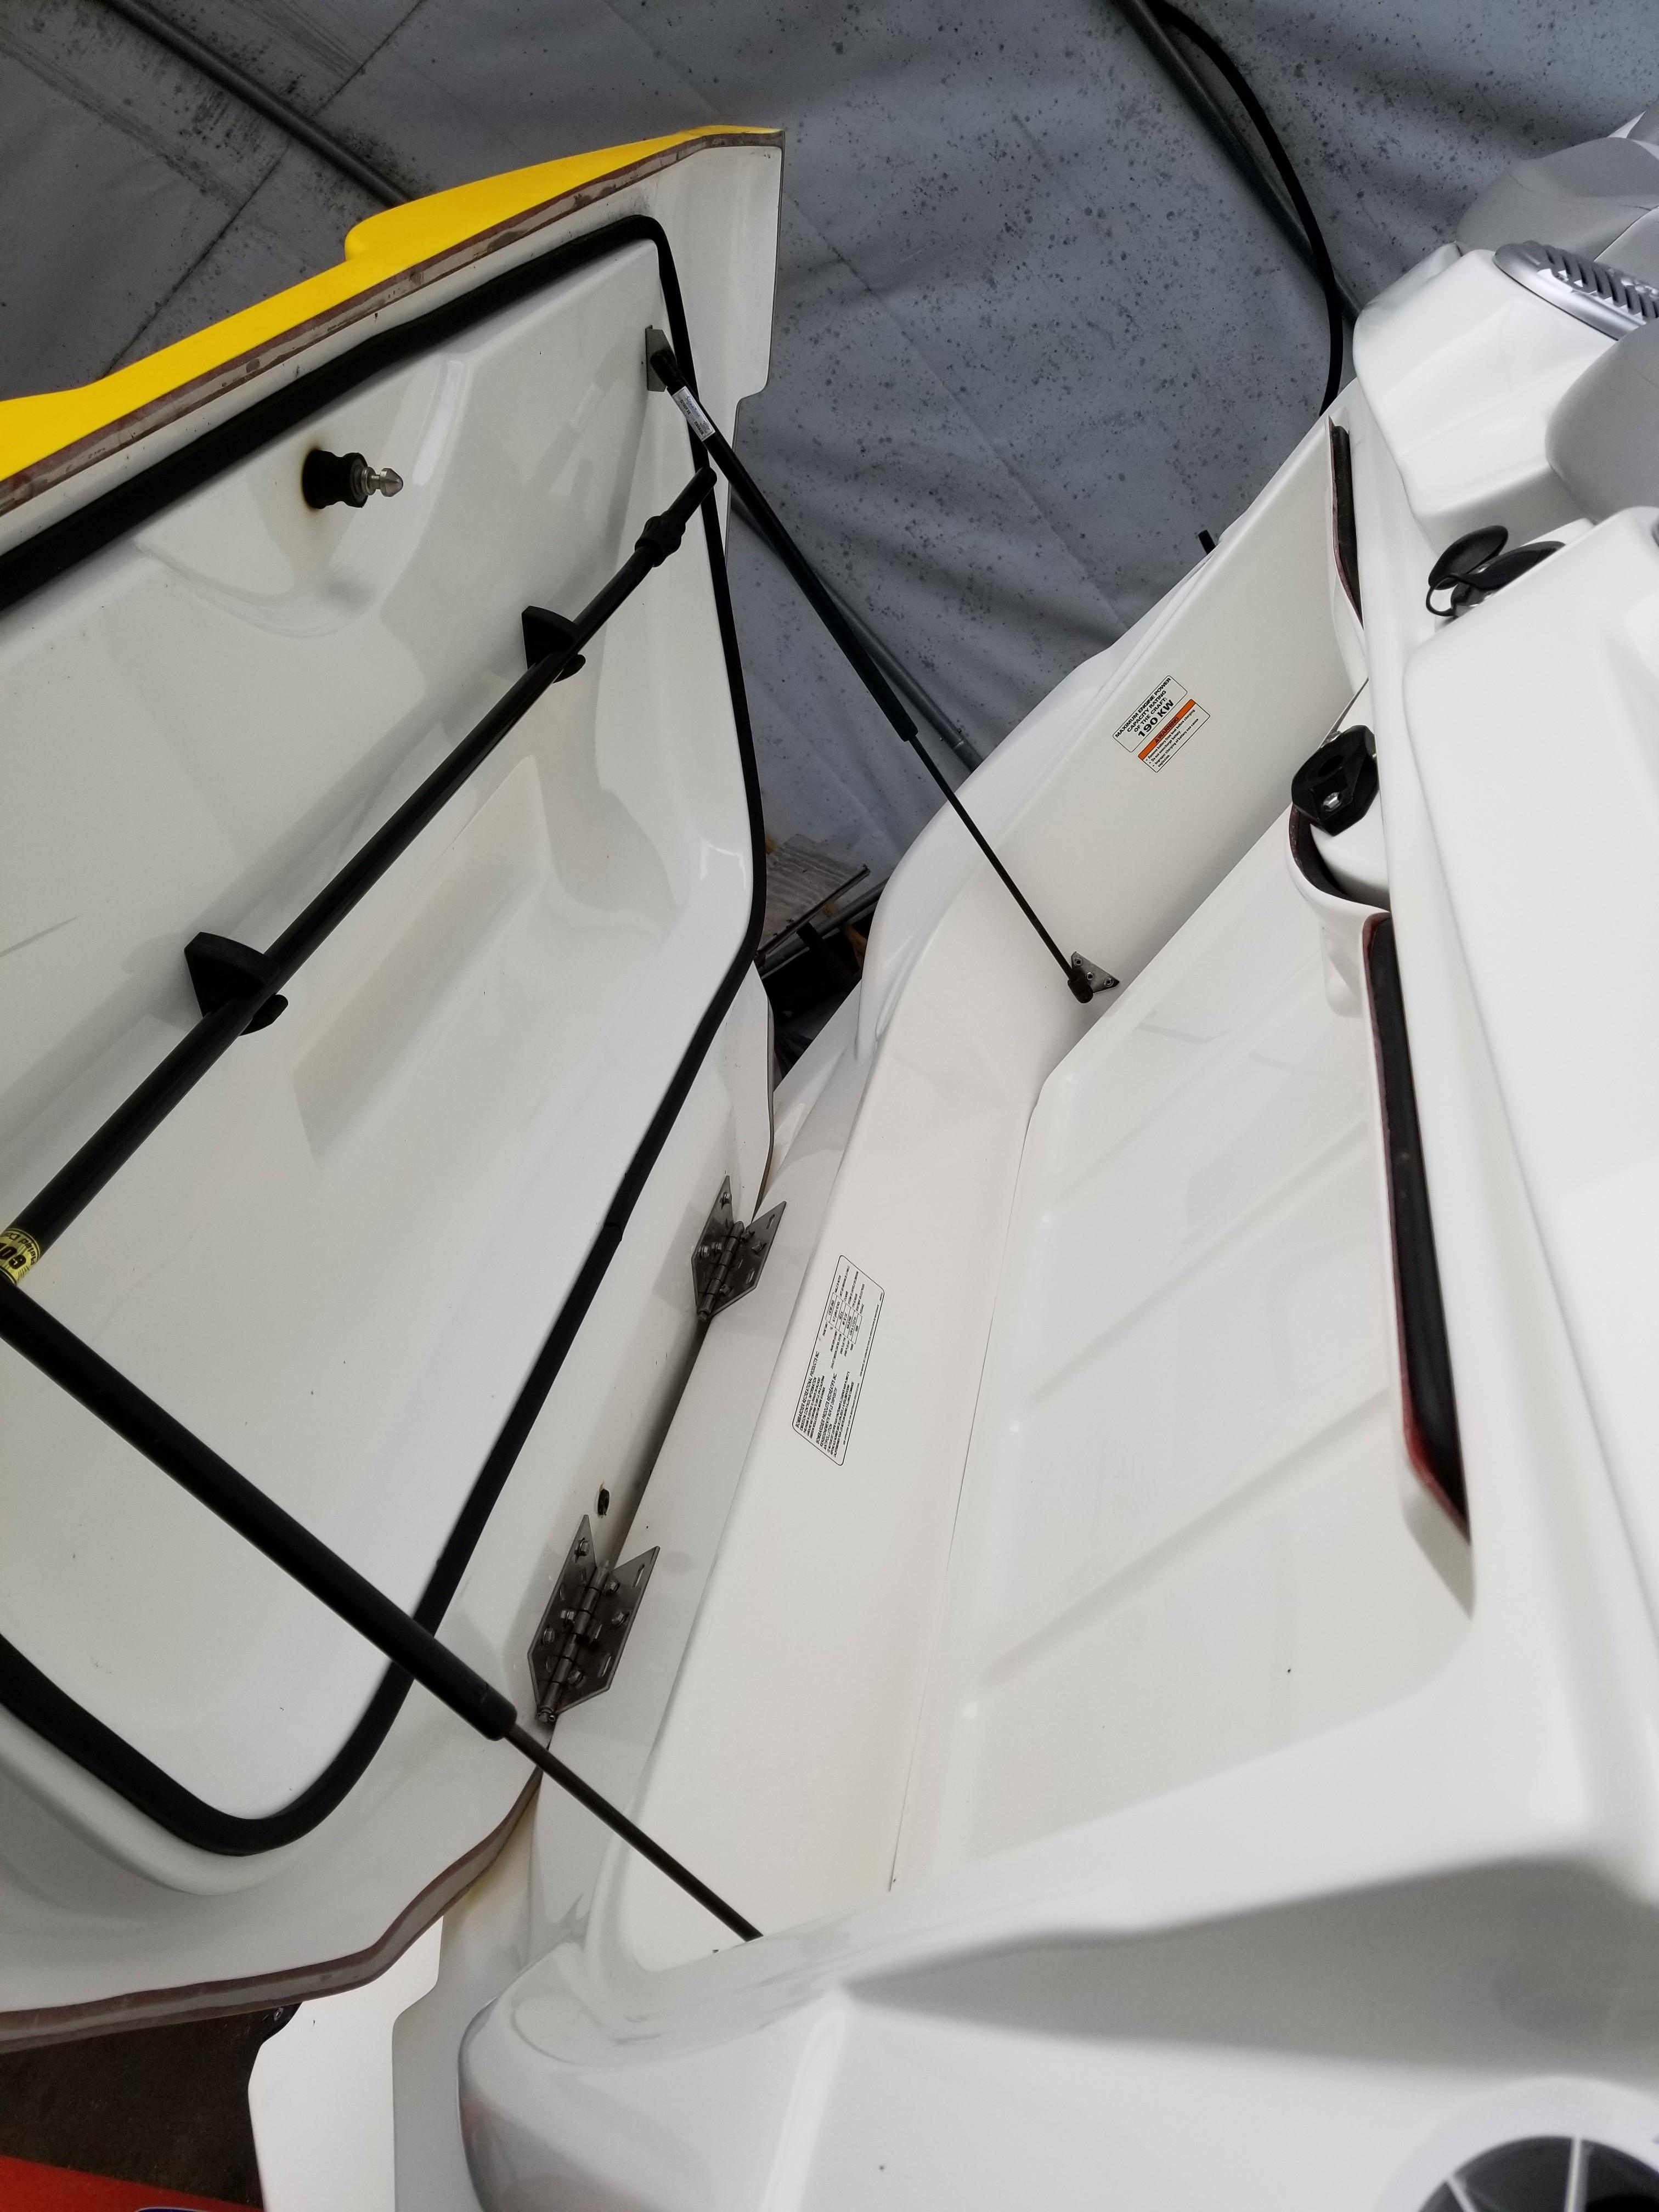 2009 Sea Doo Sportboat boat for sale, model of the boat is 150 Speedster & Image # 10 of 16